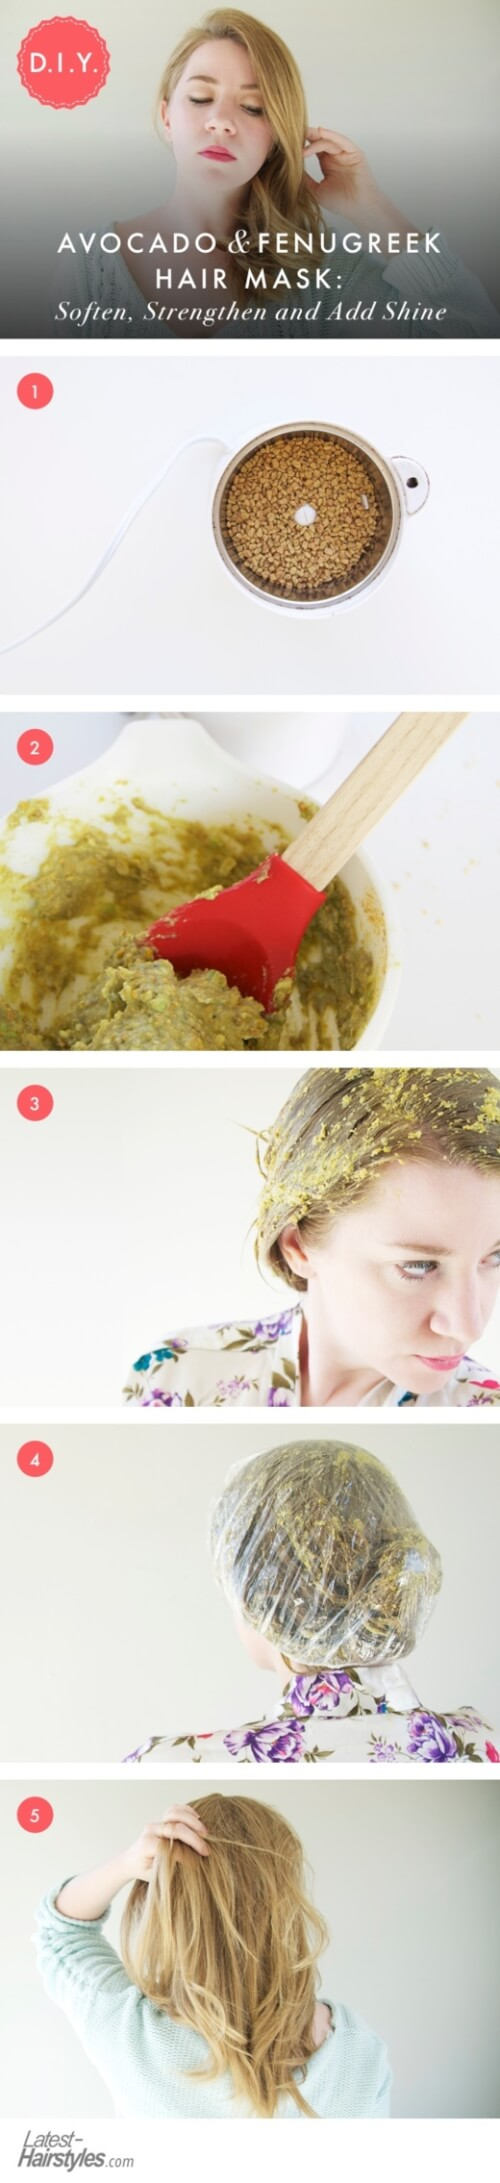 diy-avocado-hair-mask